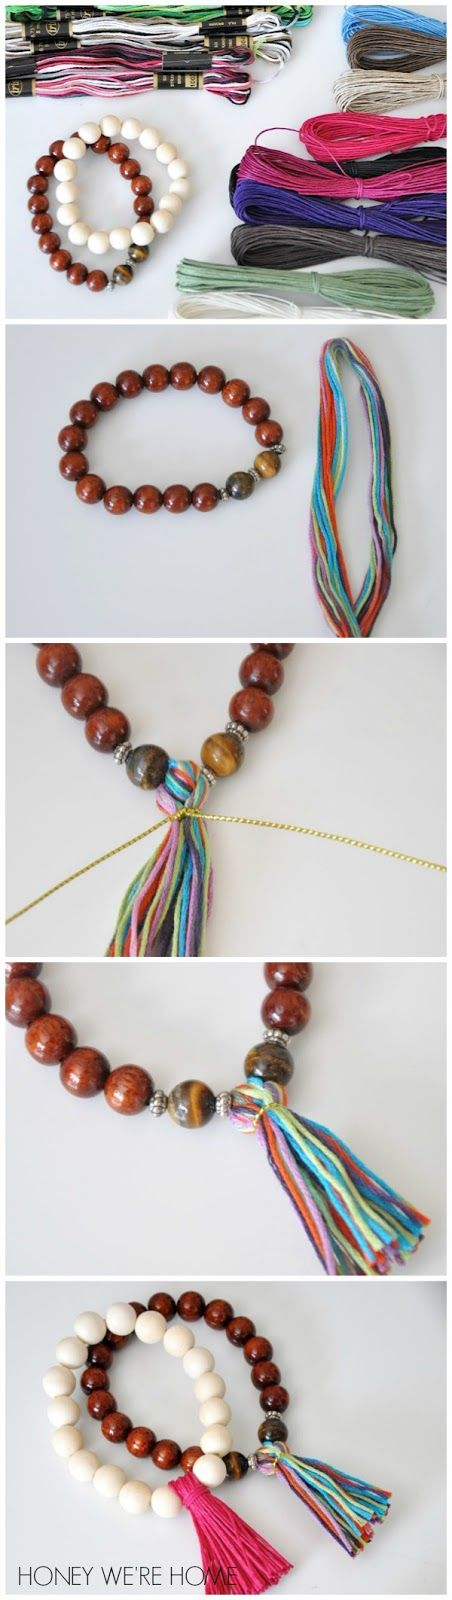 DIY Tassel Bracelets | Honey We're Home